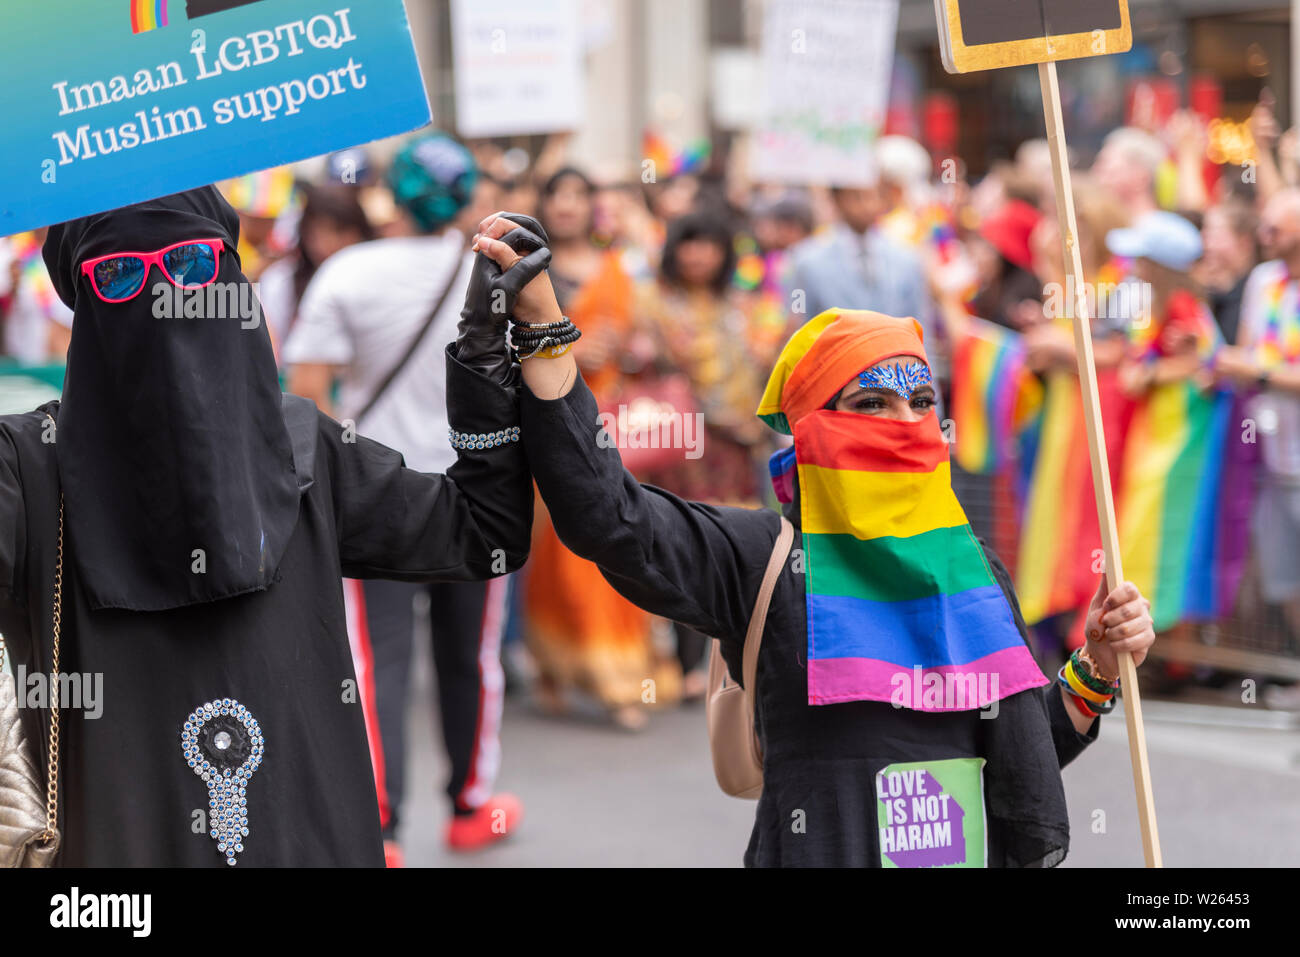 pride-in-london-aims-to-promote-all-aspects-of-the-lgbt-community-in-a-colourful-parade-from-portland-place-to-whitehall-2019-marks-the-50th-anniversary-of-the-modern-gay-rights-movement-and-is-expected-to-be-the-biggest-and-best-yet-muslim-islam-females-with-niqab-niqaab-ruband-hijab-face-veil-rainbow-colours-W26453.jpg